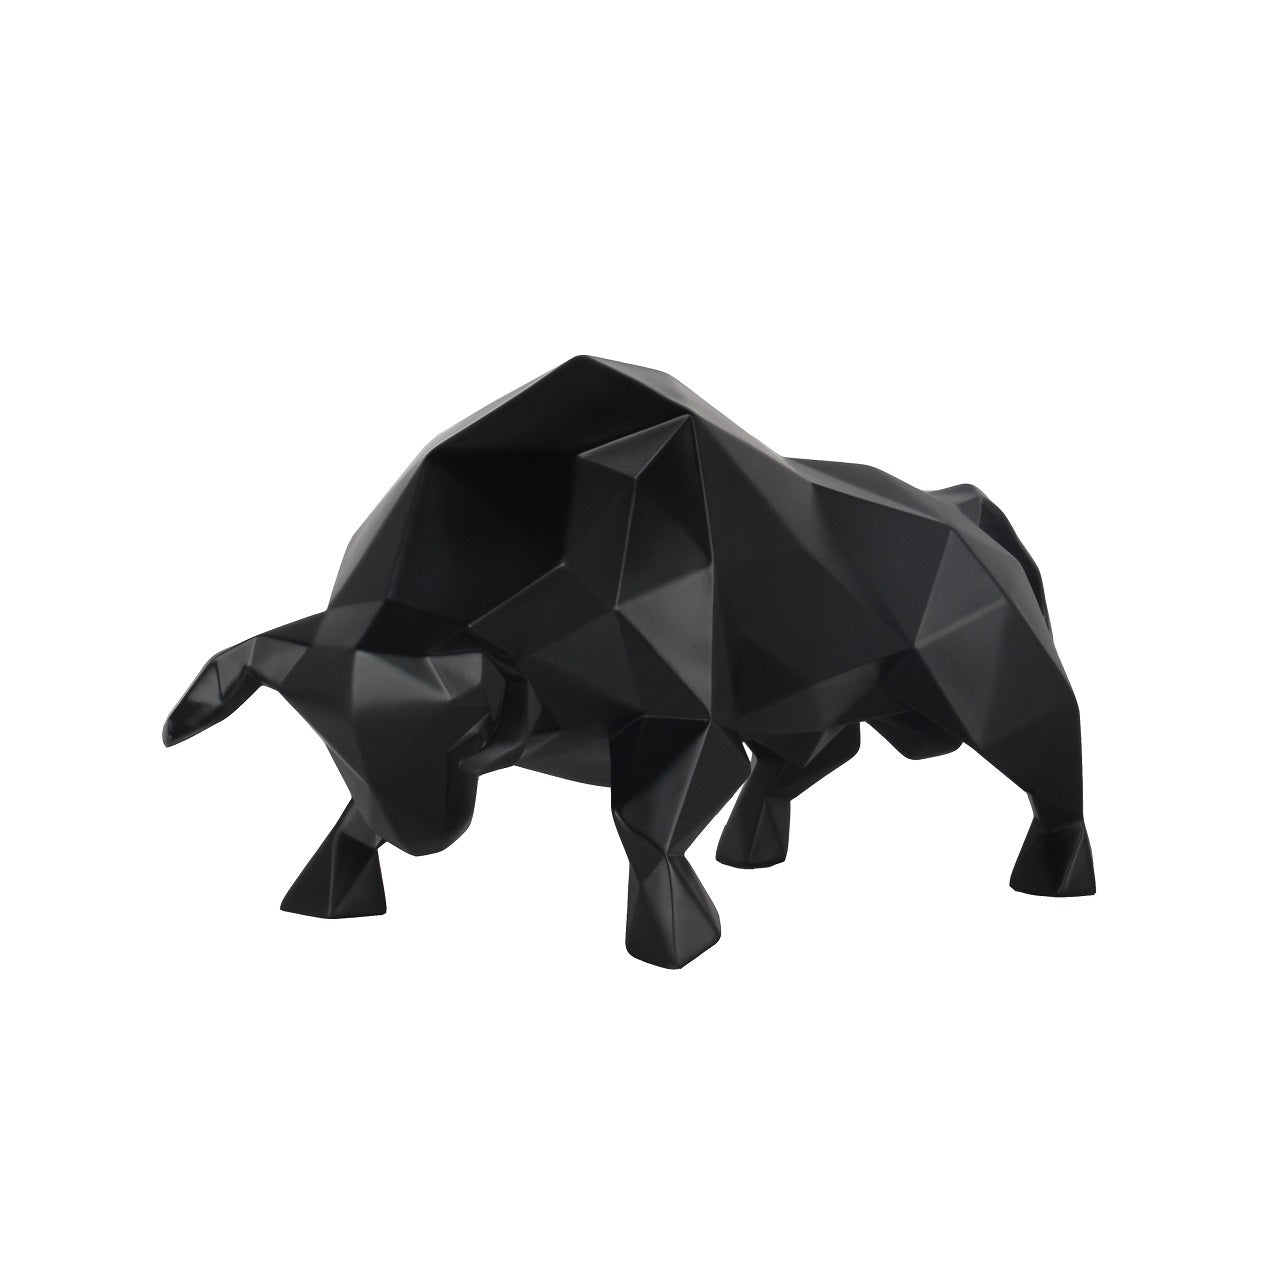 Diego the Bull Sculpture